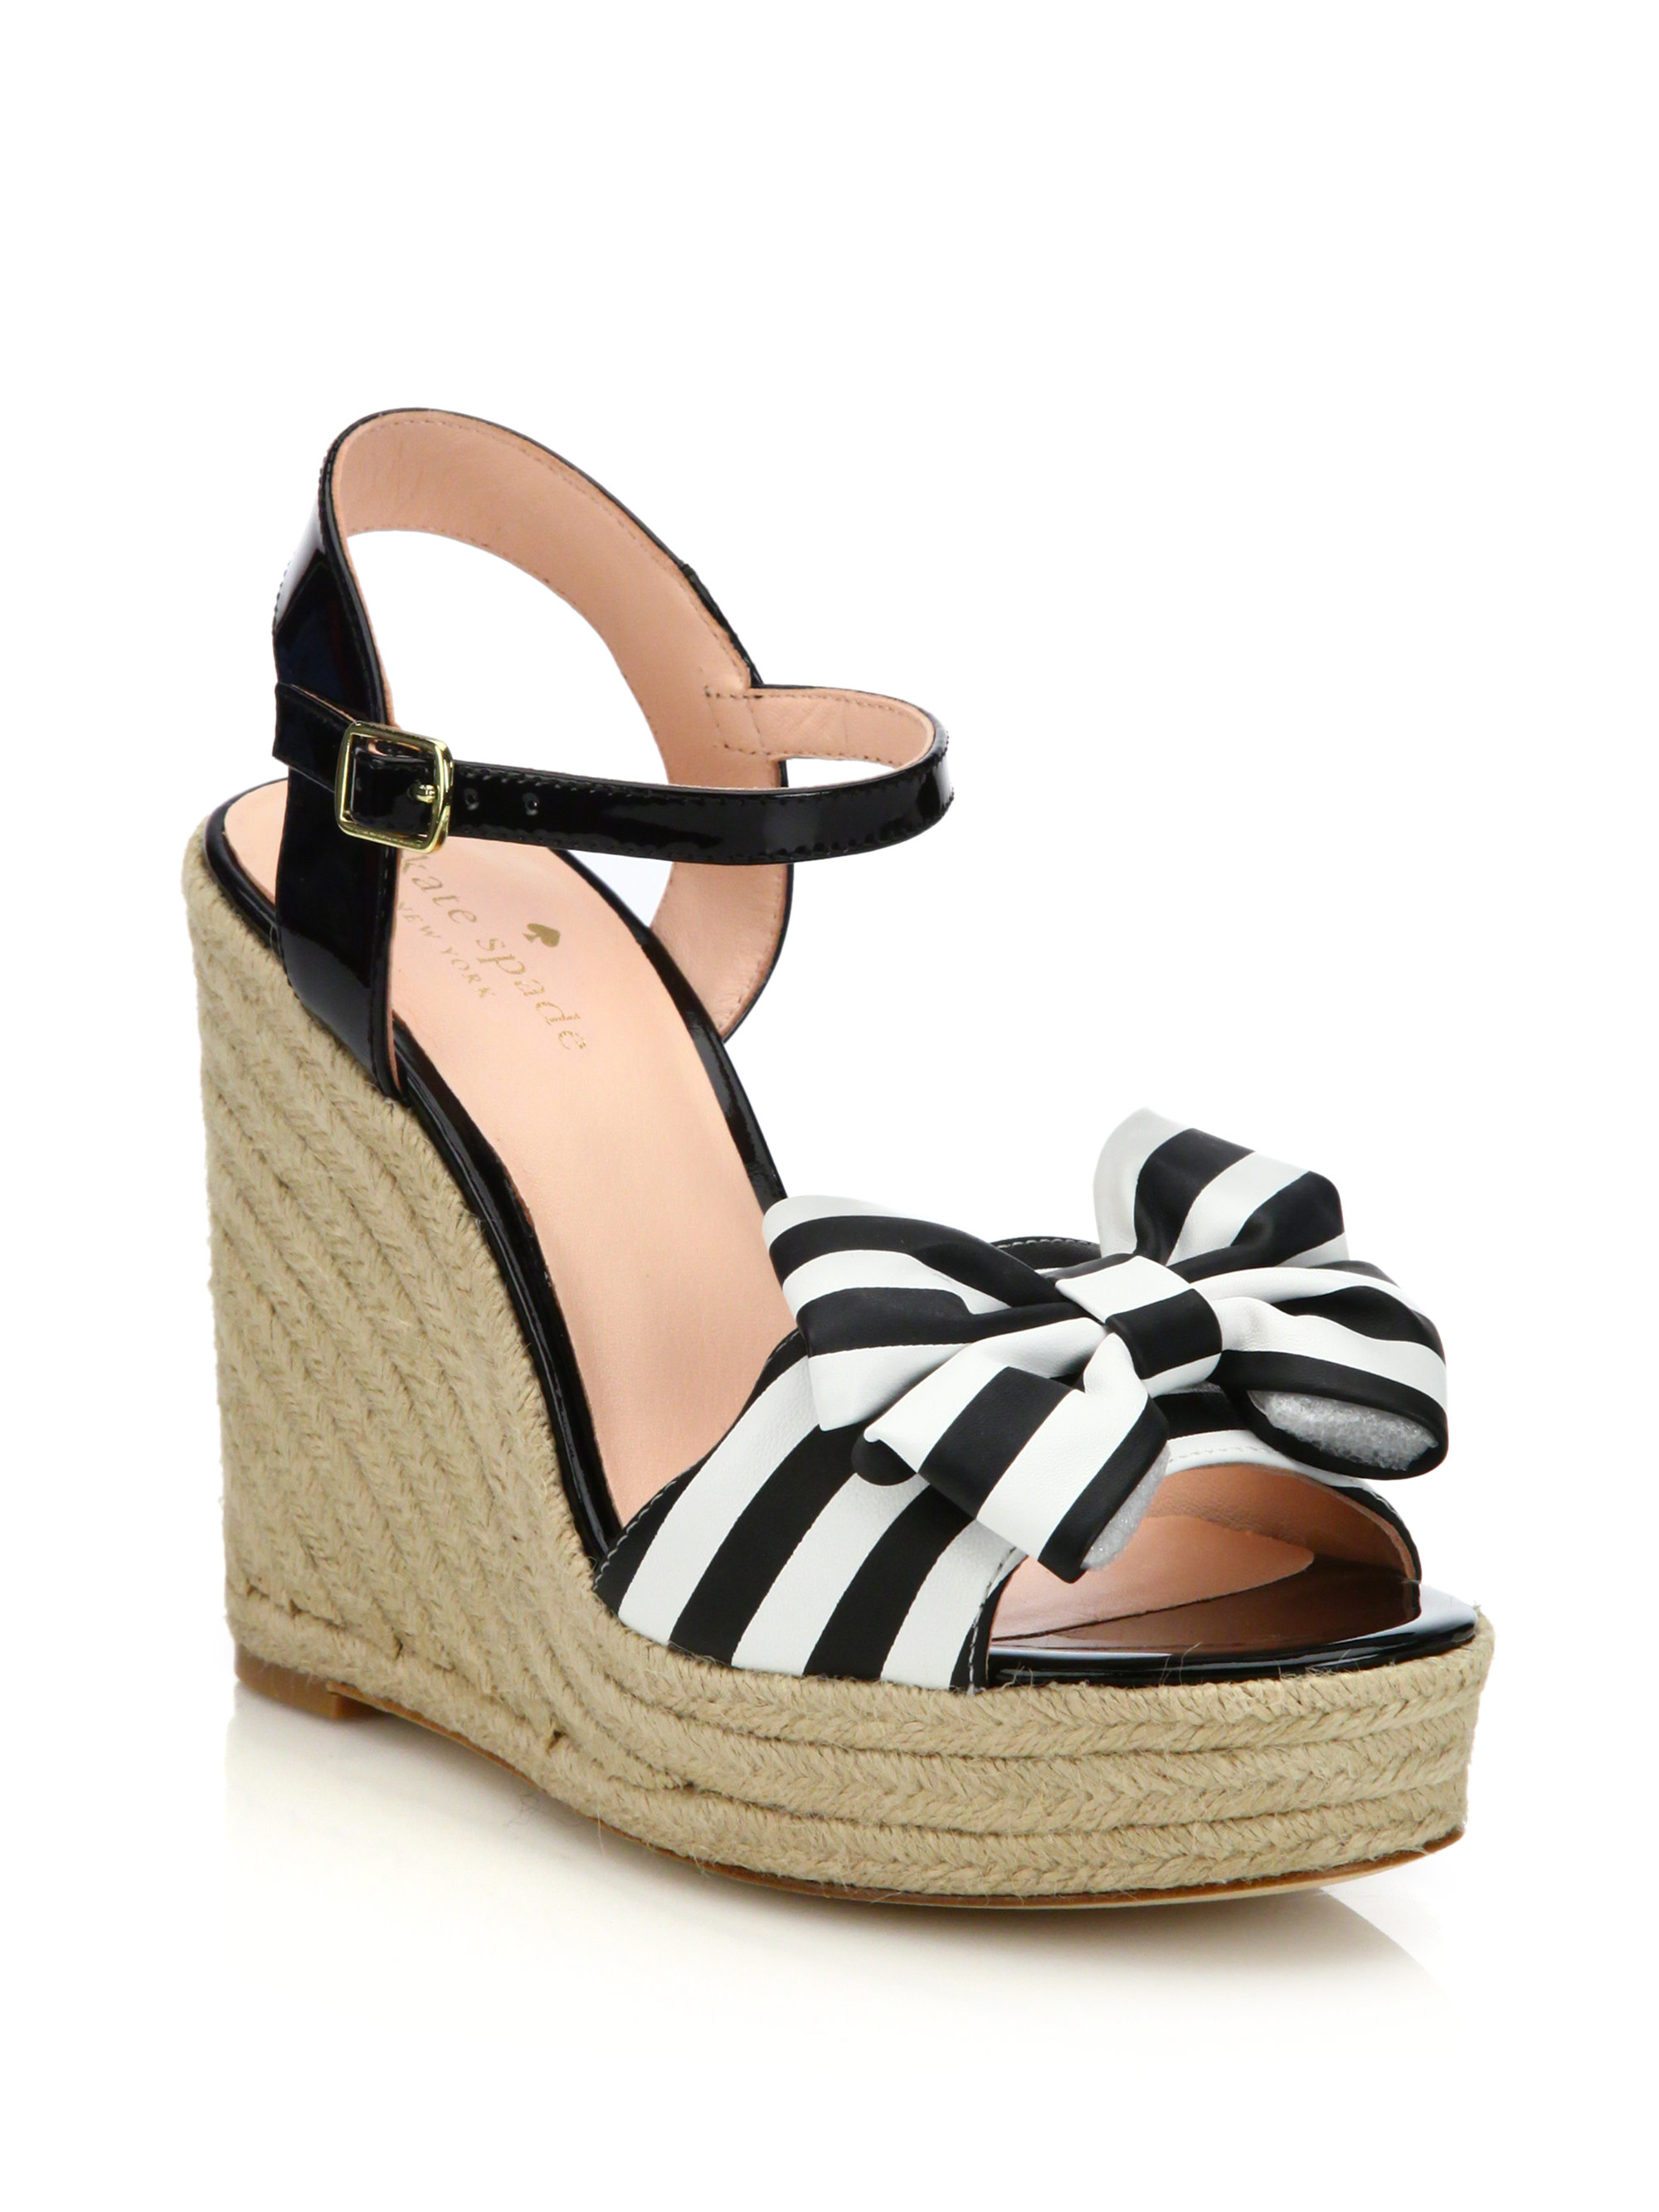 looking for for sale cheap real eastbay Kate Spade New York Bow Espadrille Wedges free shipping manchester great sale nw6DVc